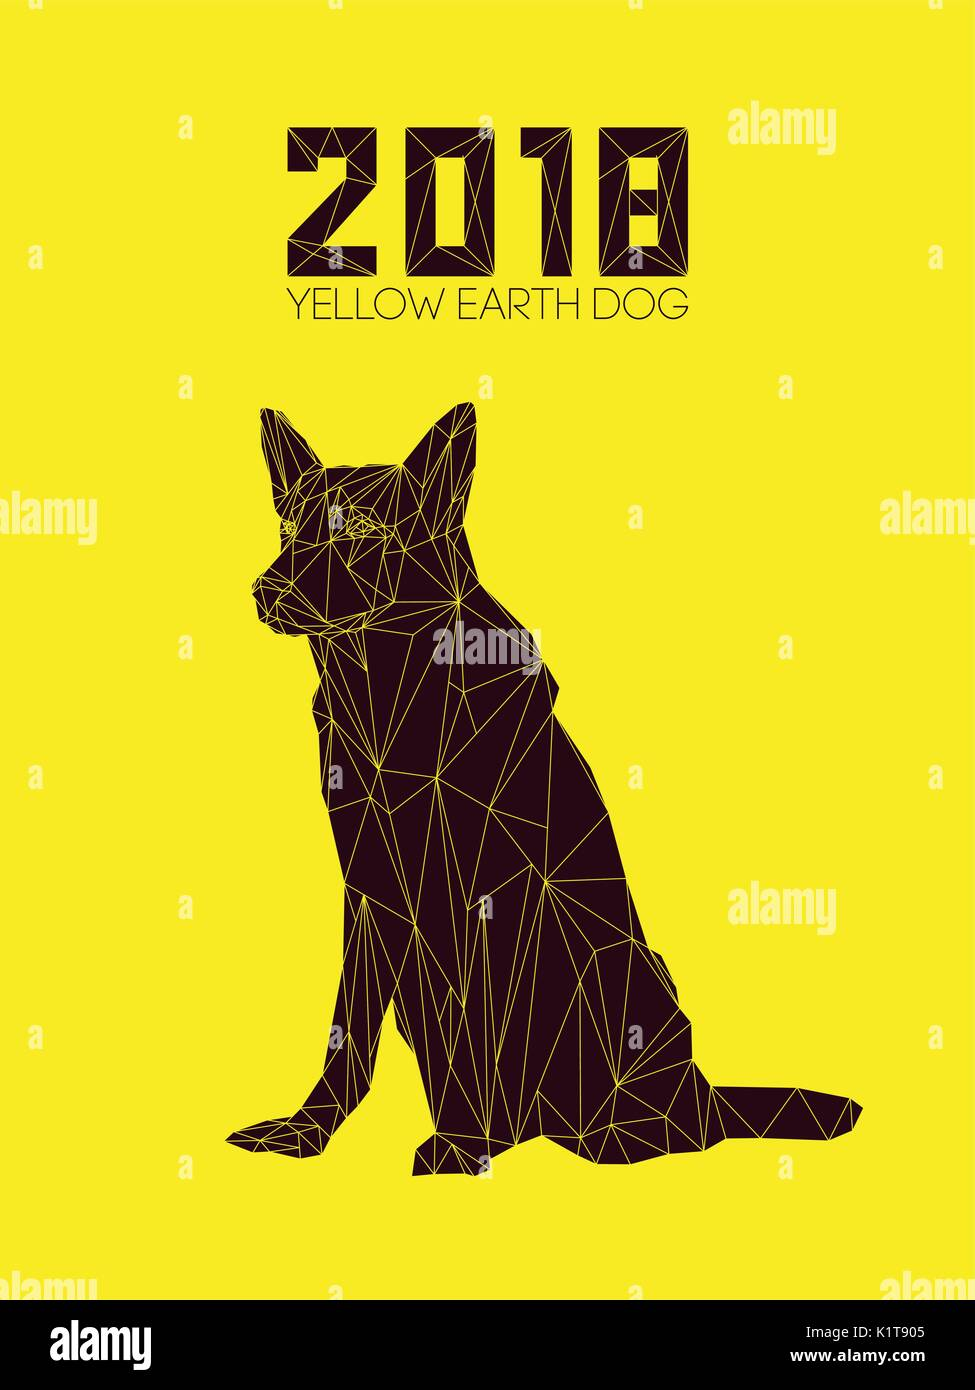 Dog is symbol of new 2018 year according to chinese calendar year dog is symbol of new 2018 year according to chinese calendar year of yellow earth dog guard dog german shepherd in polygons style biocorpaavc